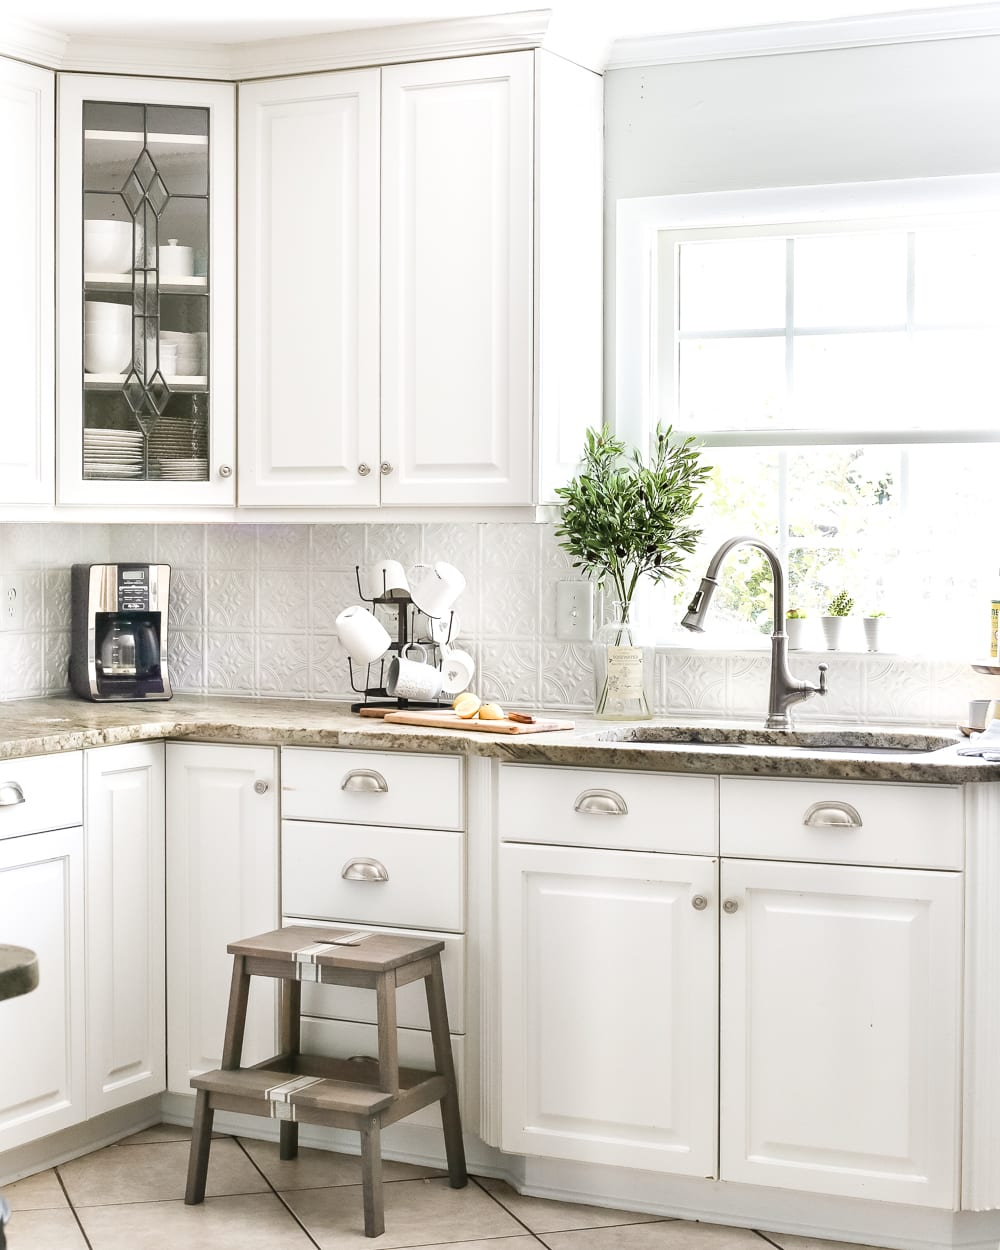 Attrayant DIY Pressed Tin Kitchen Backsplash | Blesserhouse.com   How To Makeover A Kitchen  Backsplash